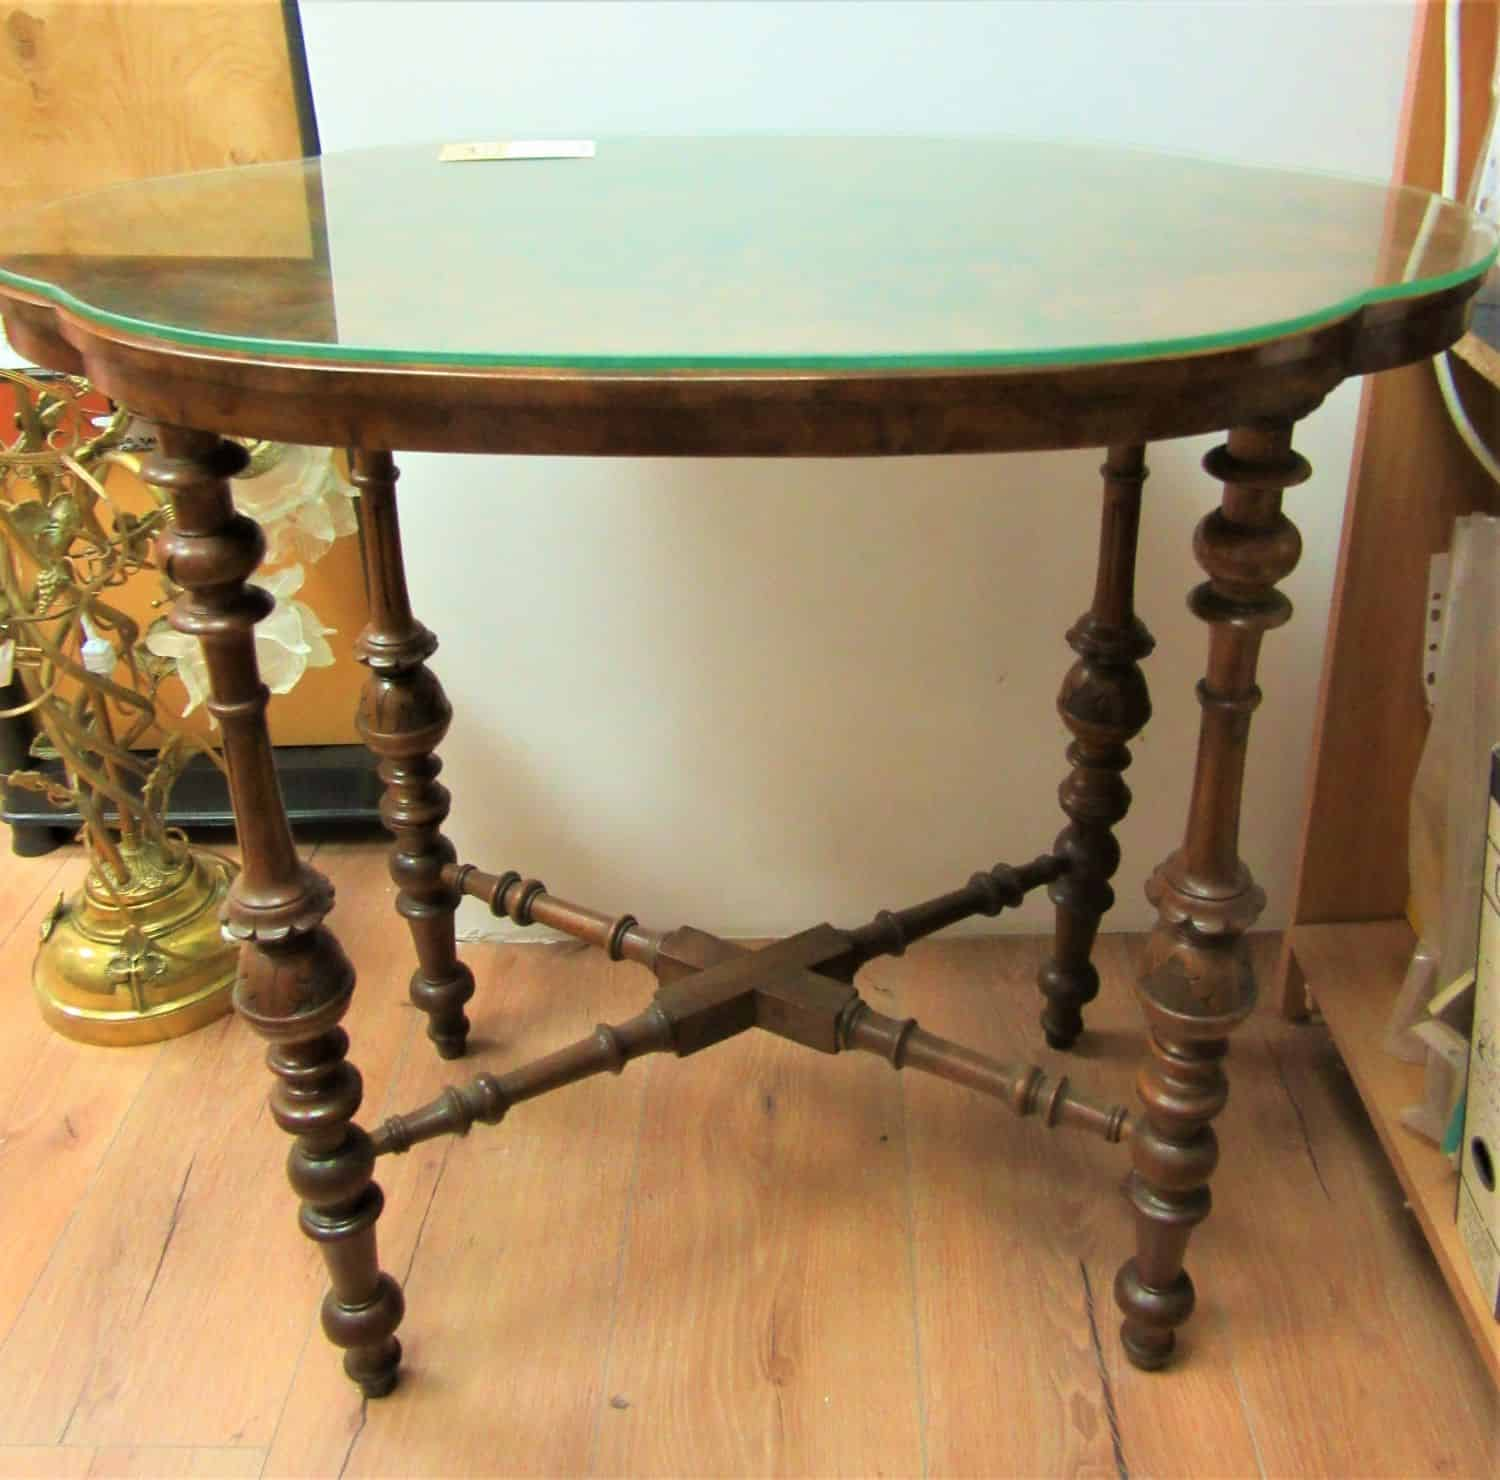 A stunning rare german burr walnut occasional table circa 1880s in exceptional condition with glass on top to protect wood